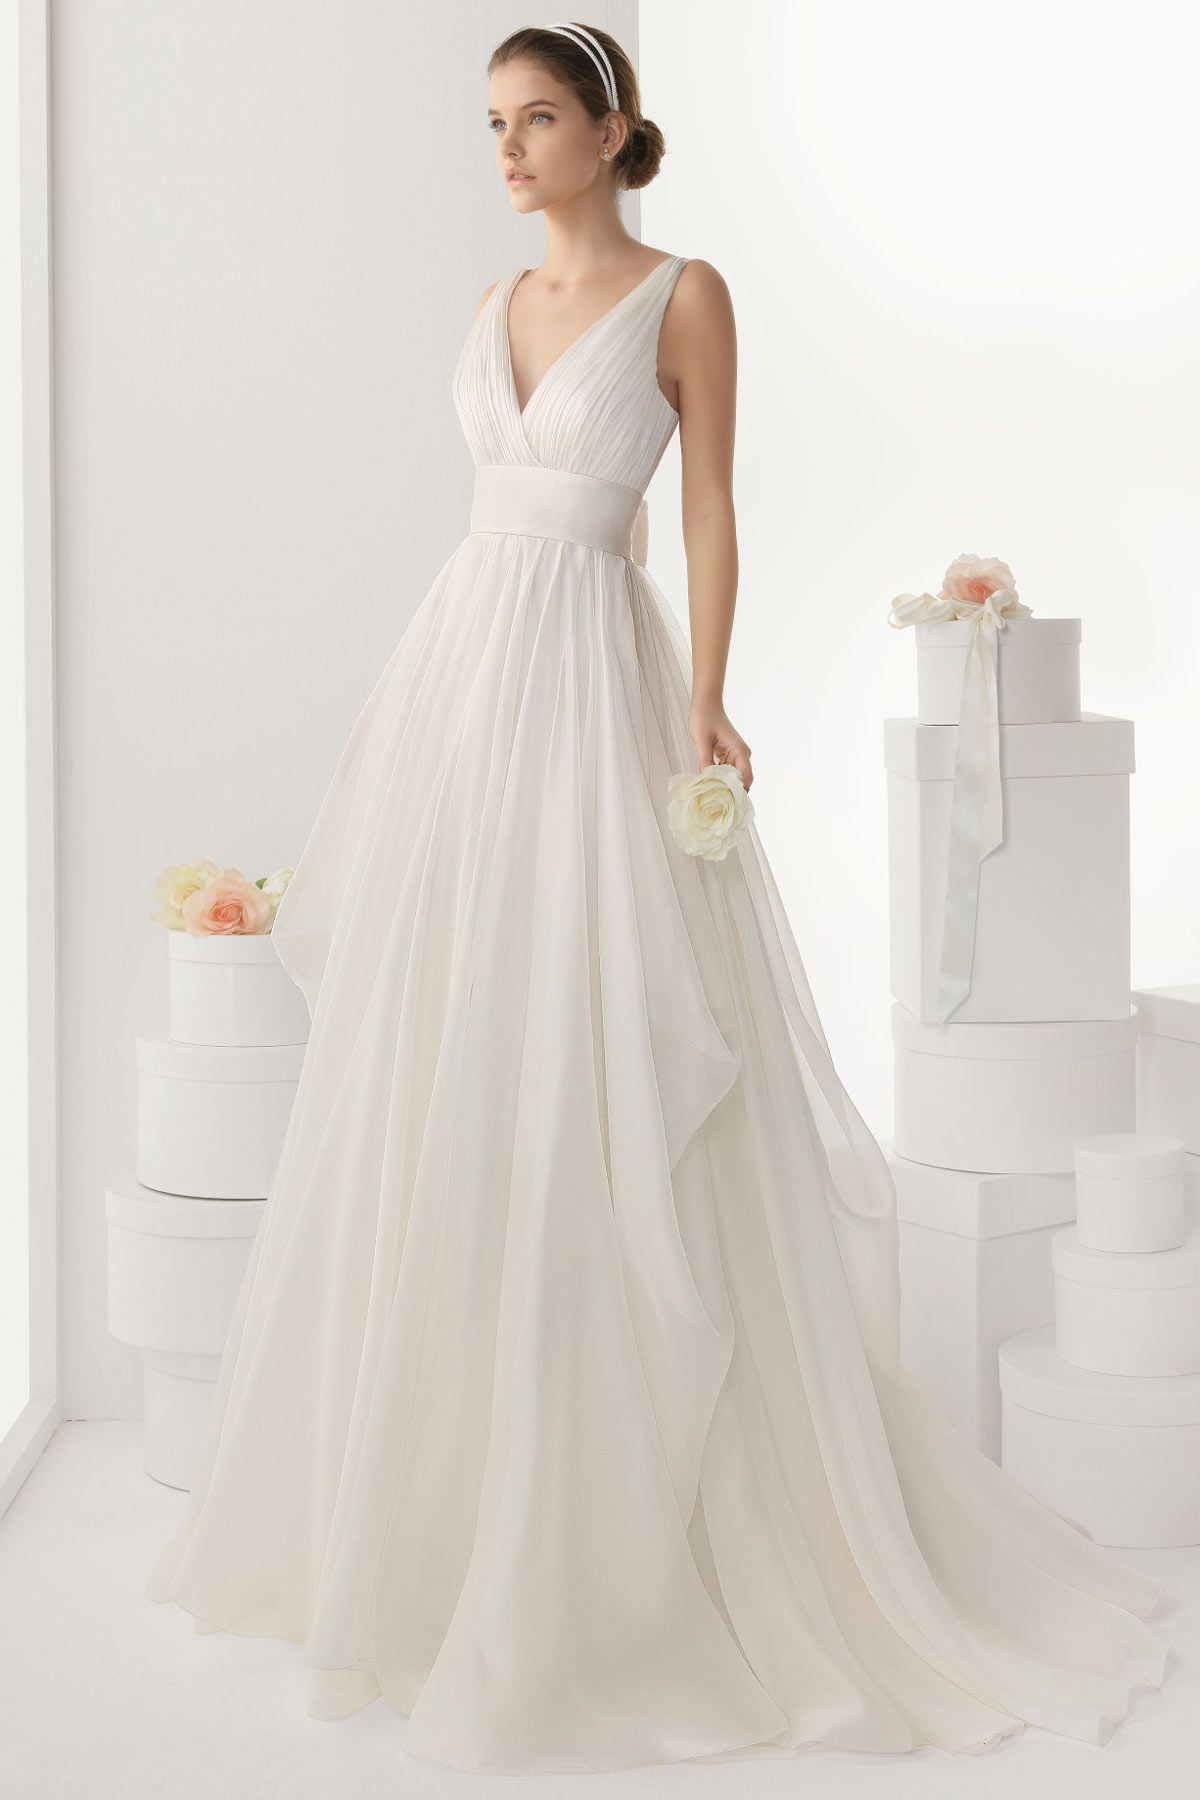 Pin on Wedding Bridal gowns